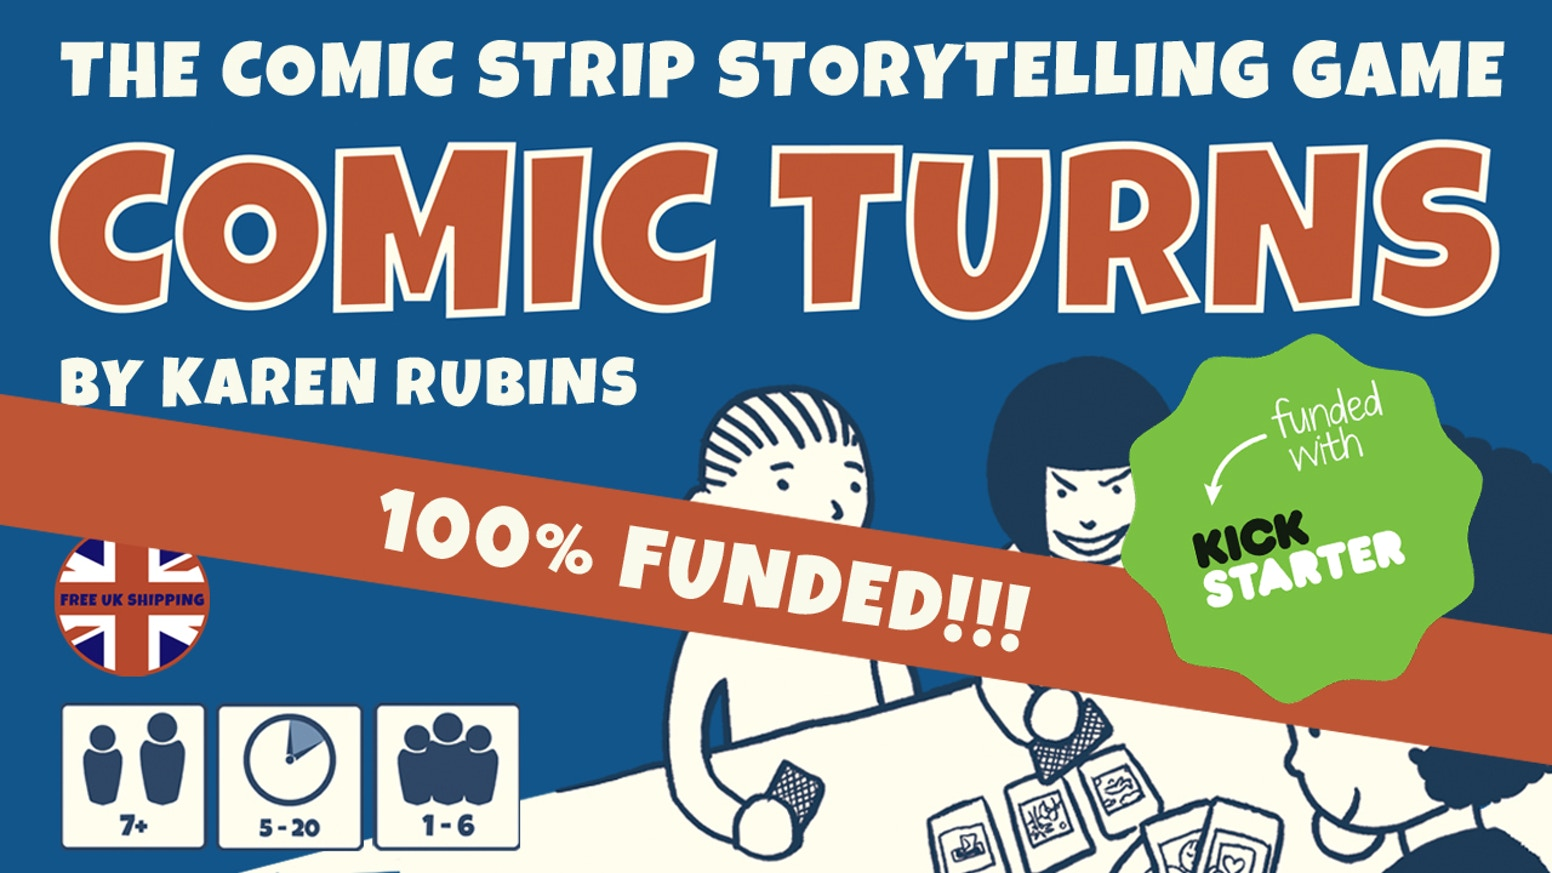 The comic strip storytelling game. A creative card game system for kids and adults. 3 ways to play included. Play, create, explore!